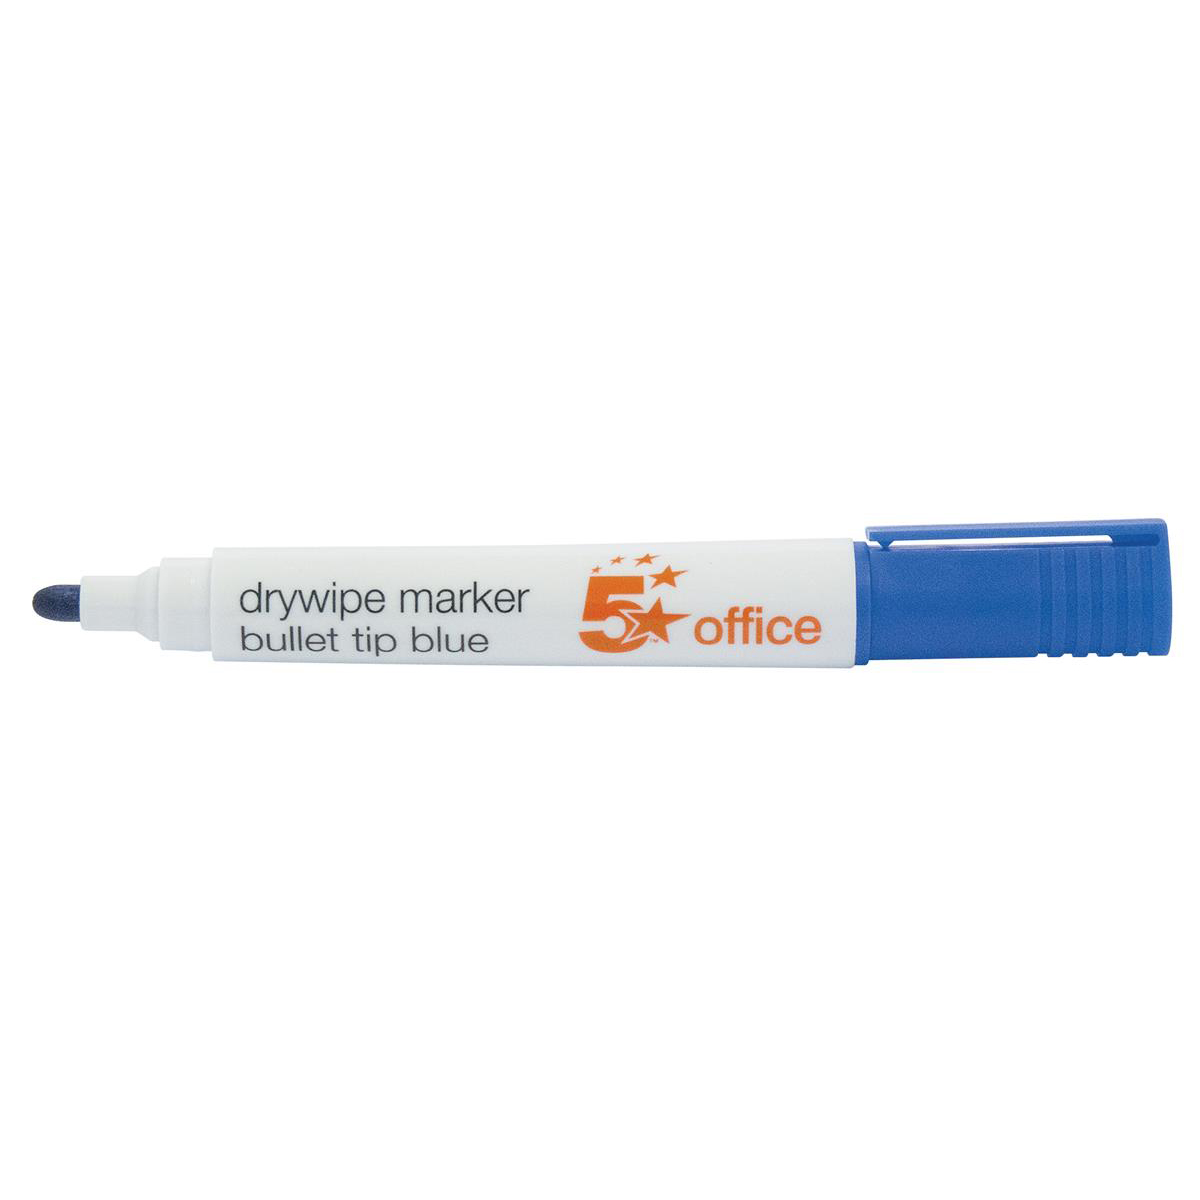 5 Star Office Drywipe Marker Xylene/Toluene-free Bullet Tip 2mm Line Blue [Pack 12]